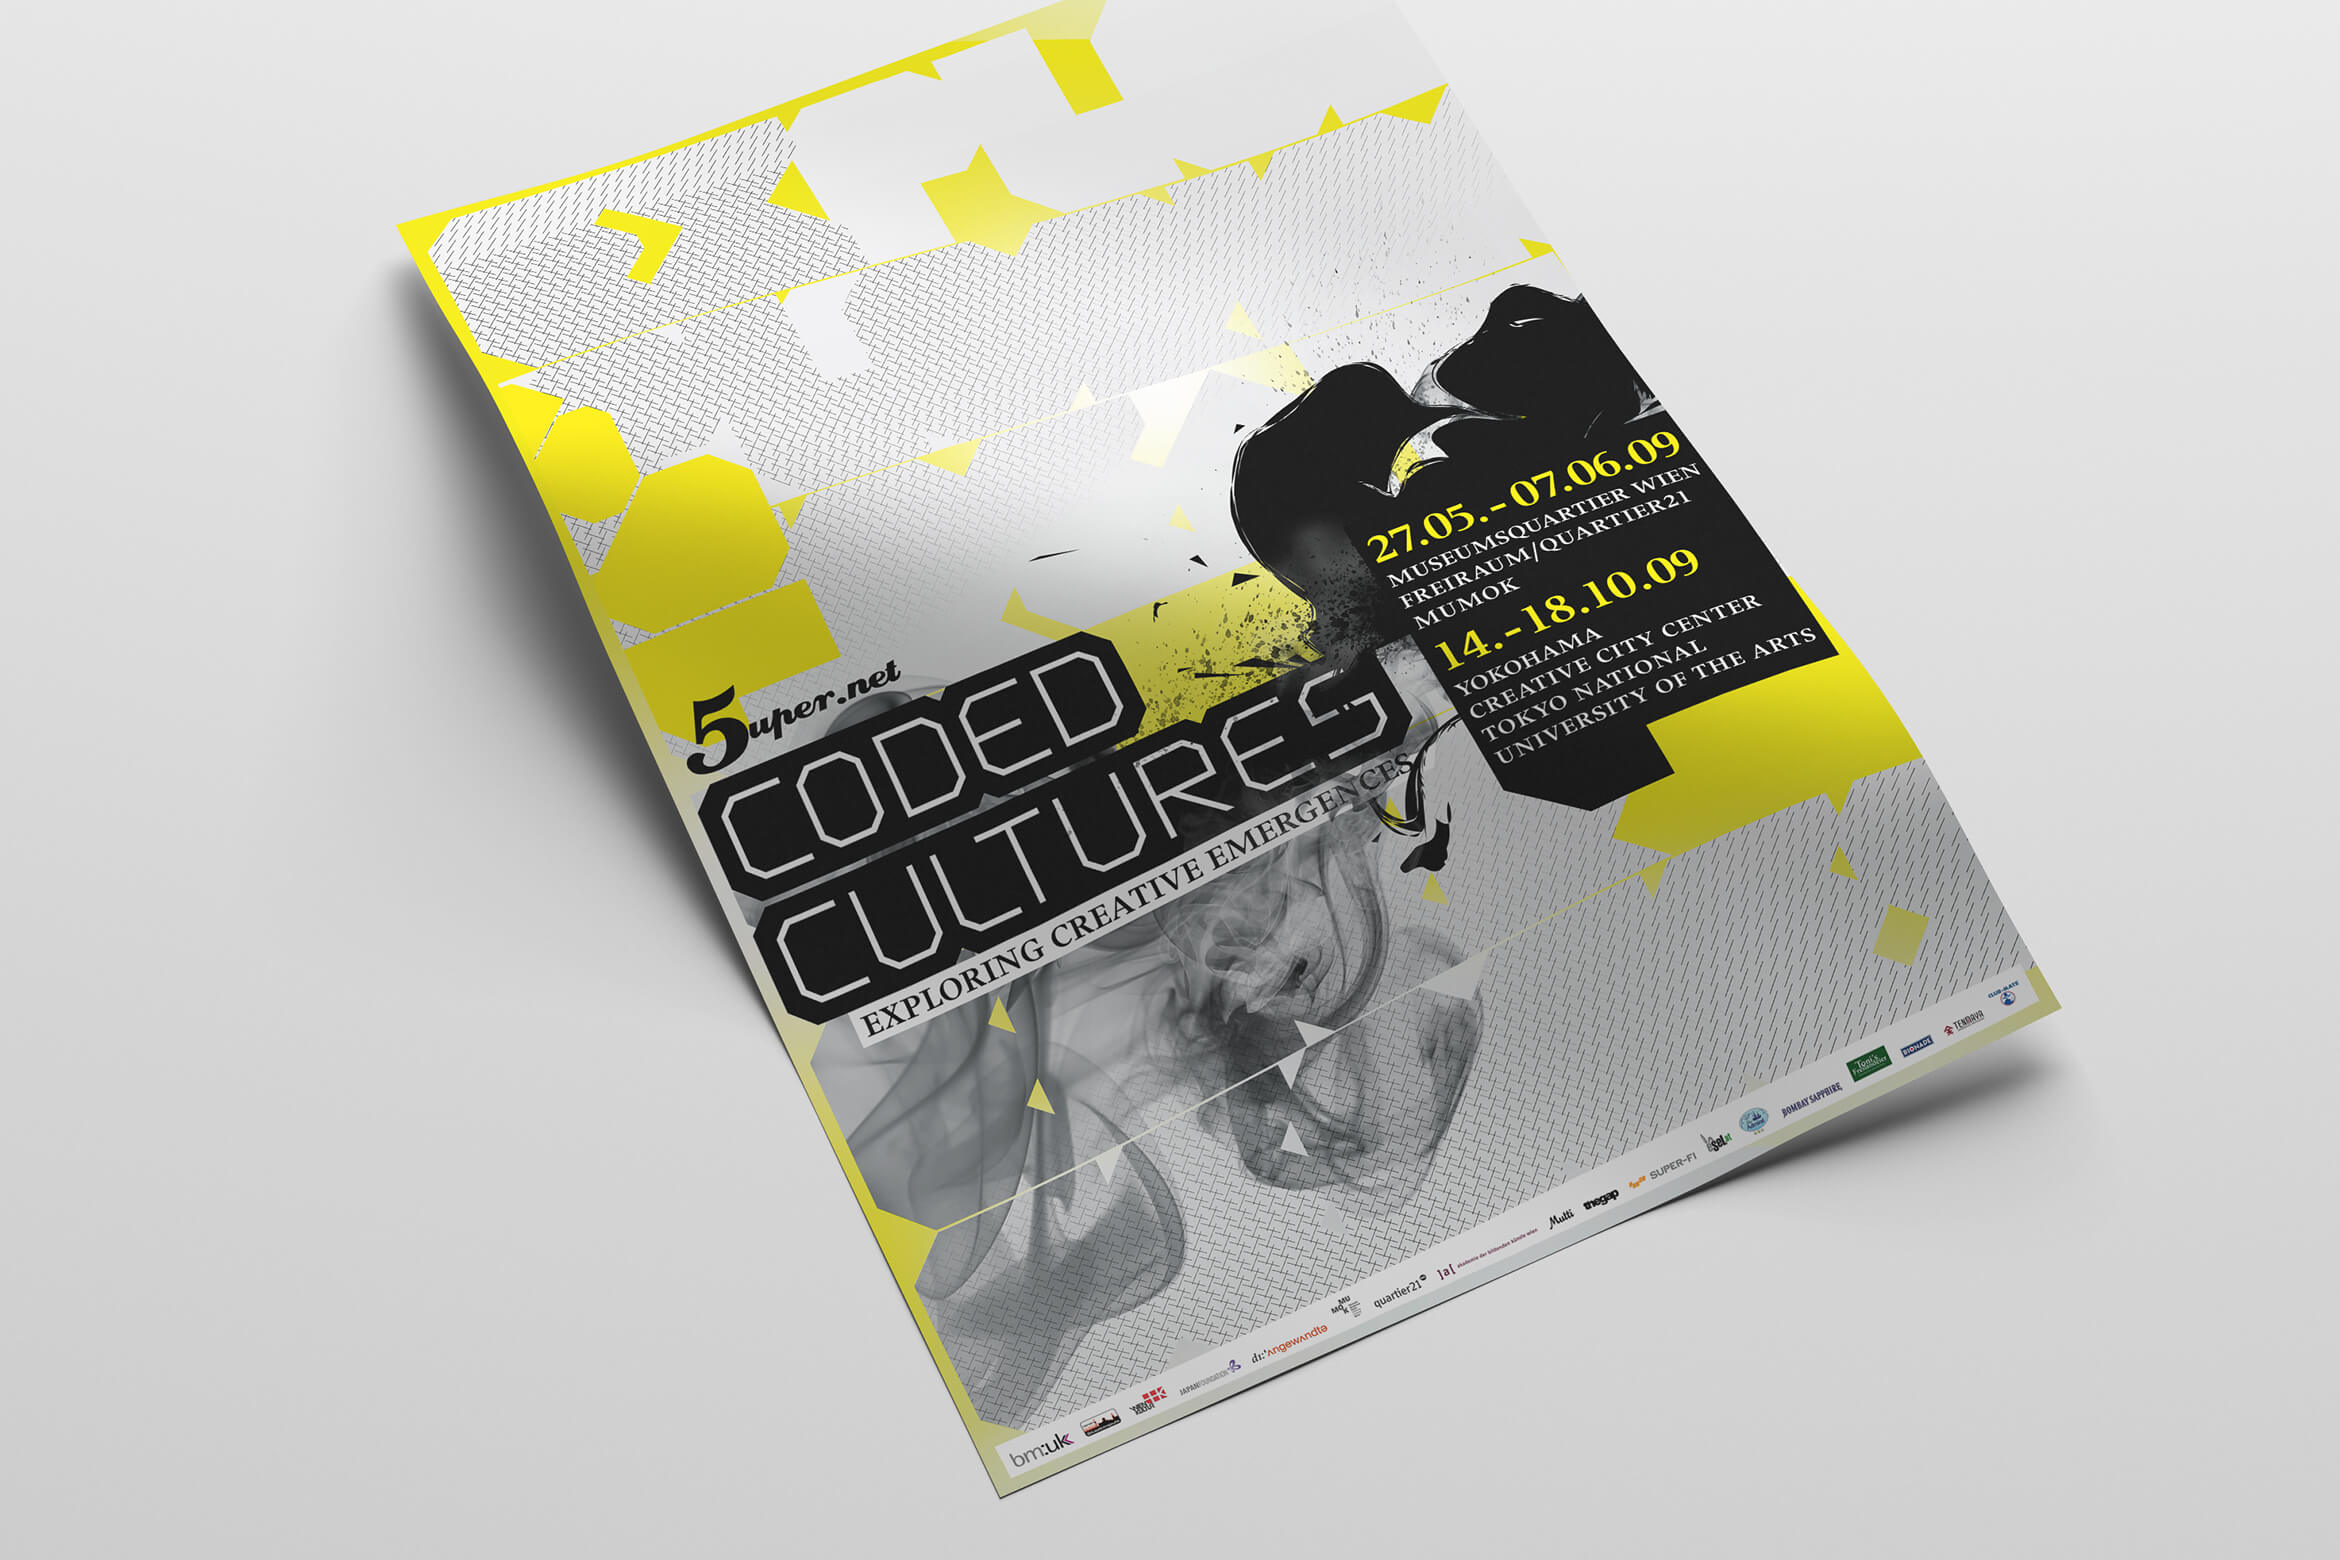 img_coded_cultures_2